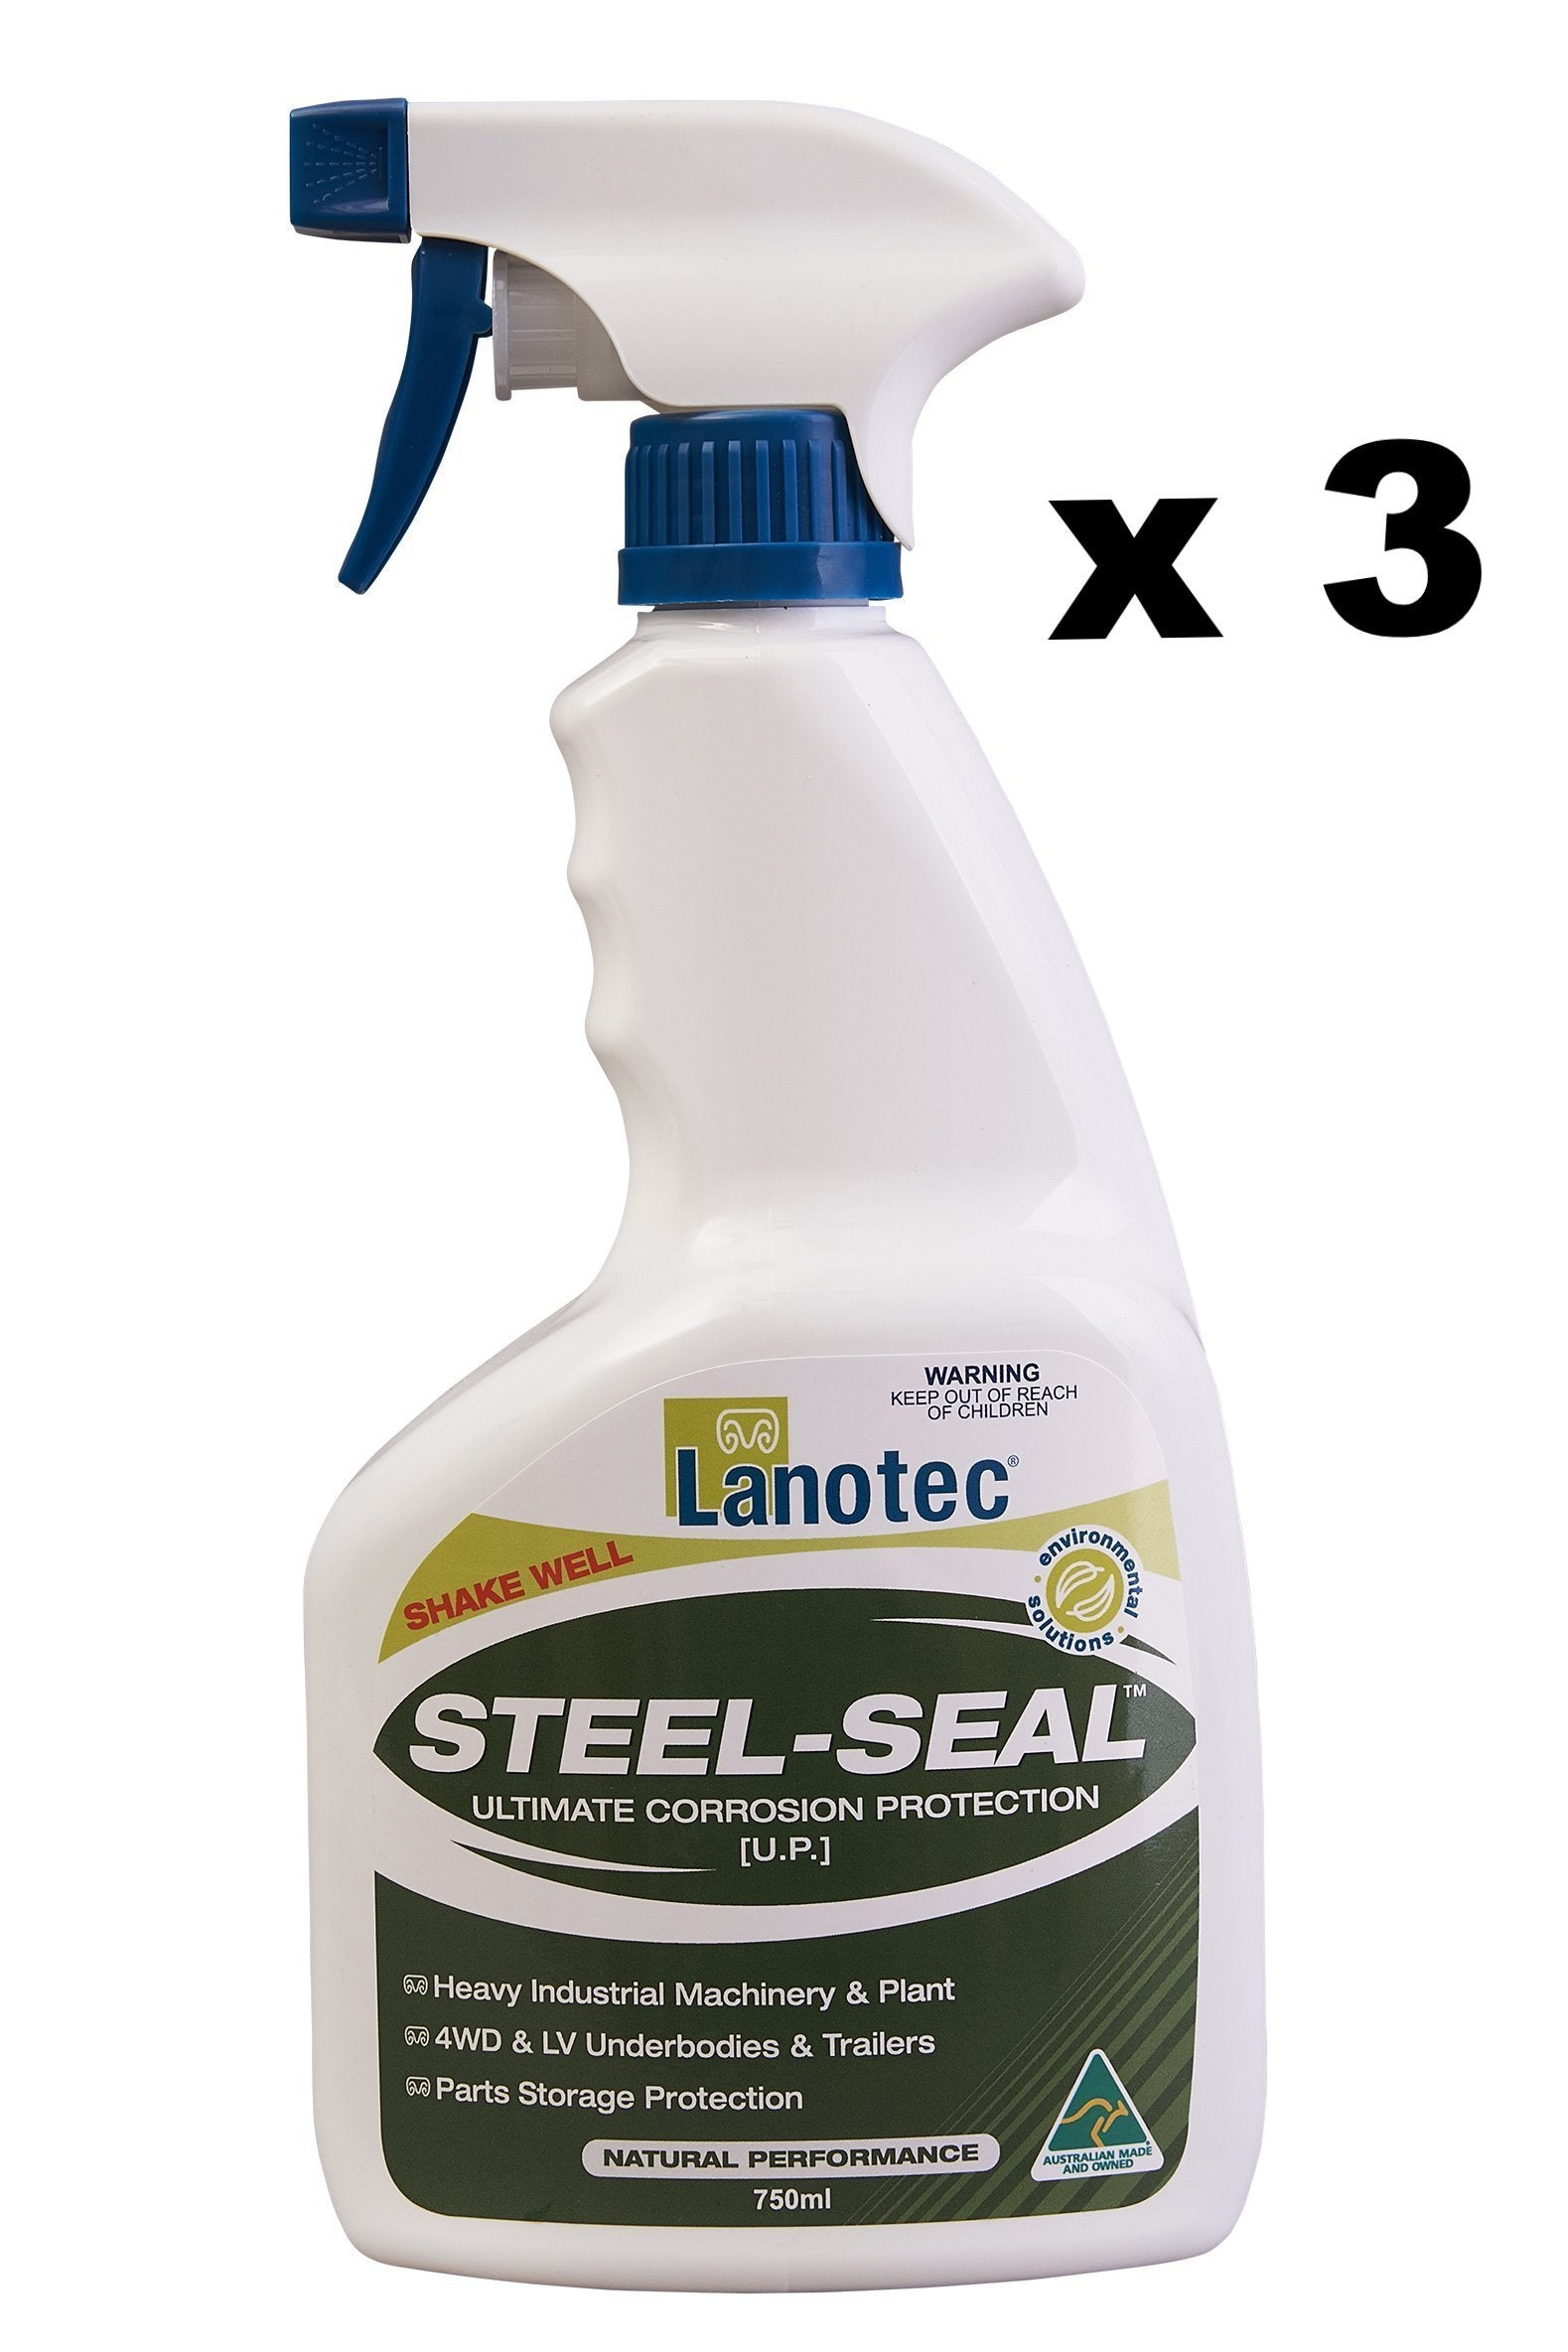 Lanotec Lanolin Steel-Seal Corrosion Protection 4WD Trailers Ag Marine 750ml x 3